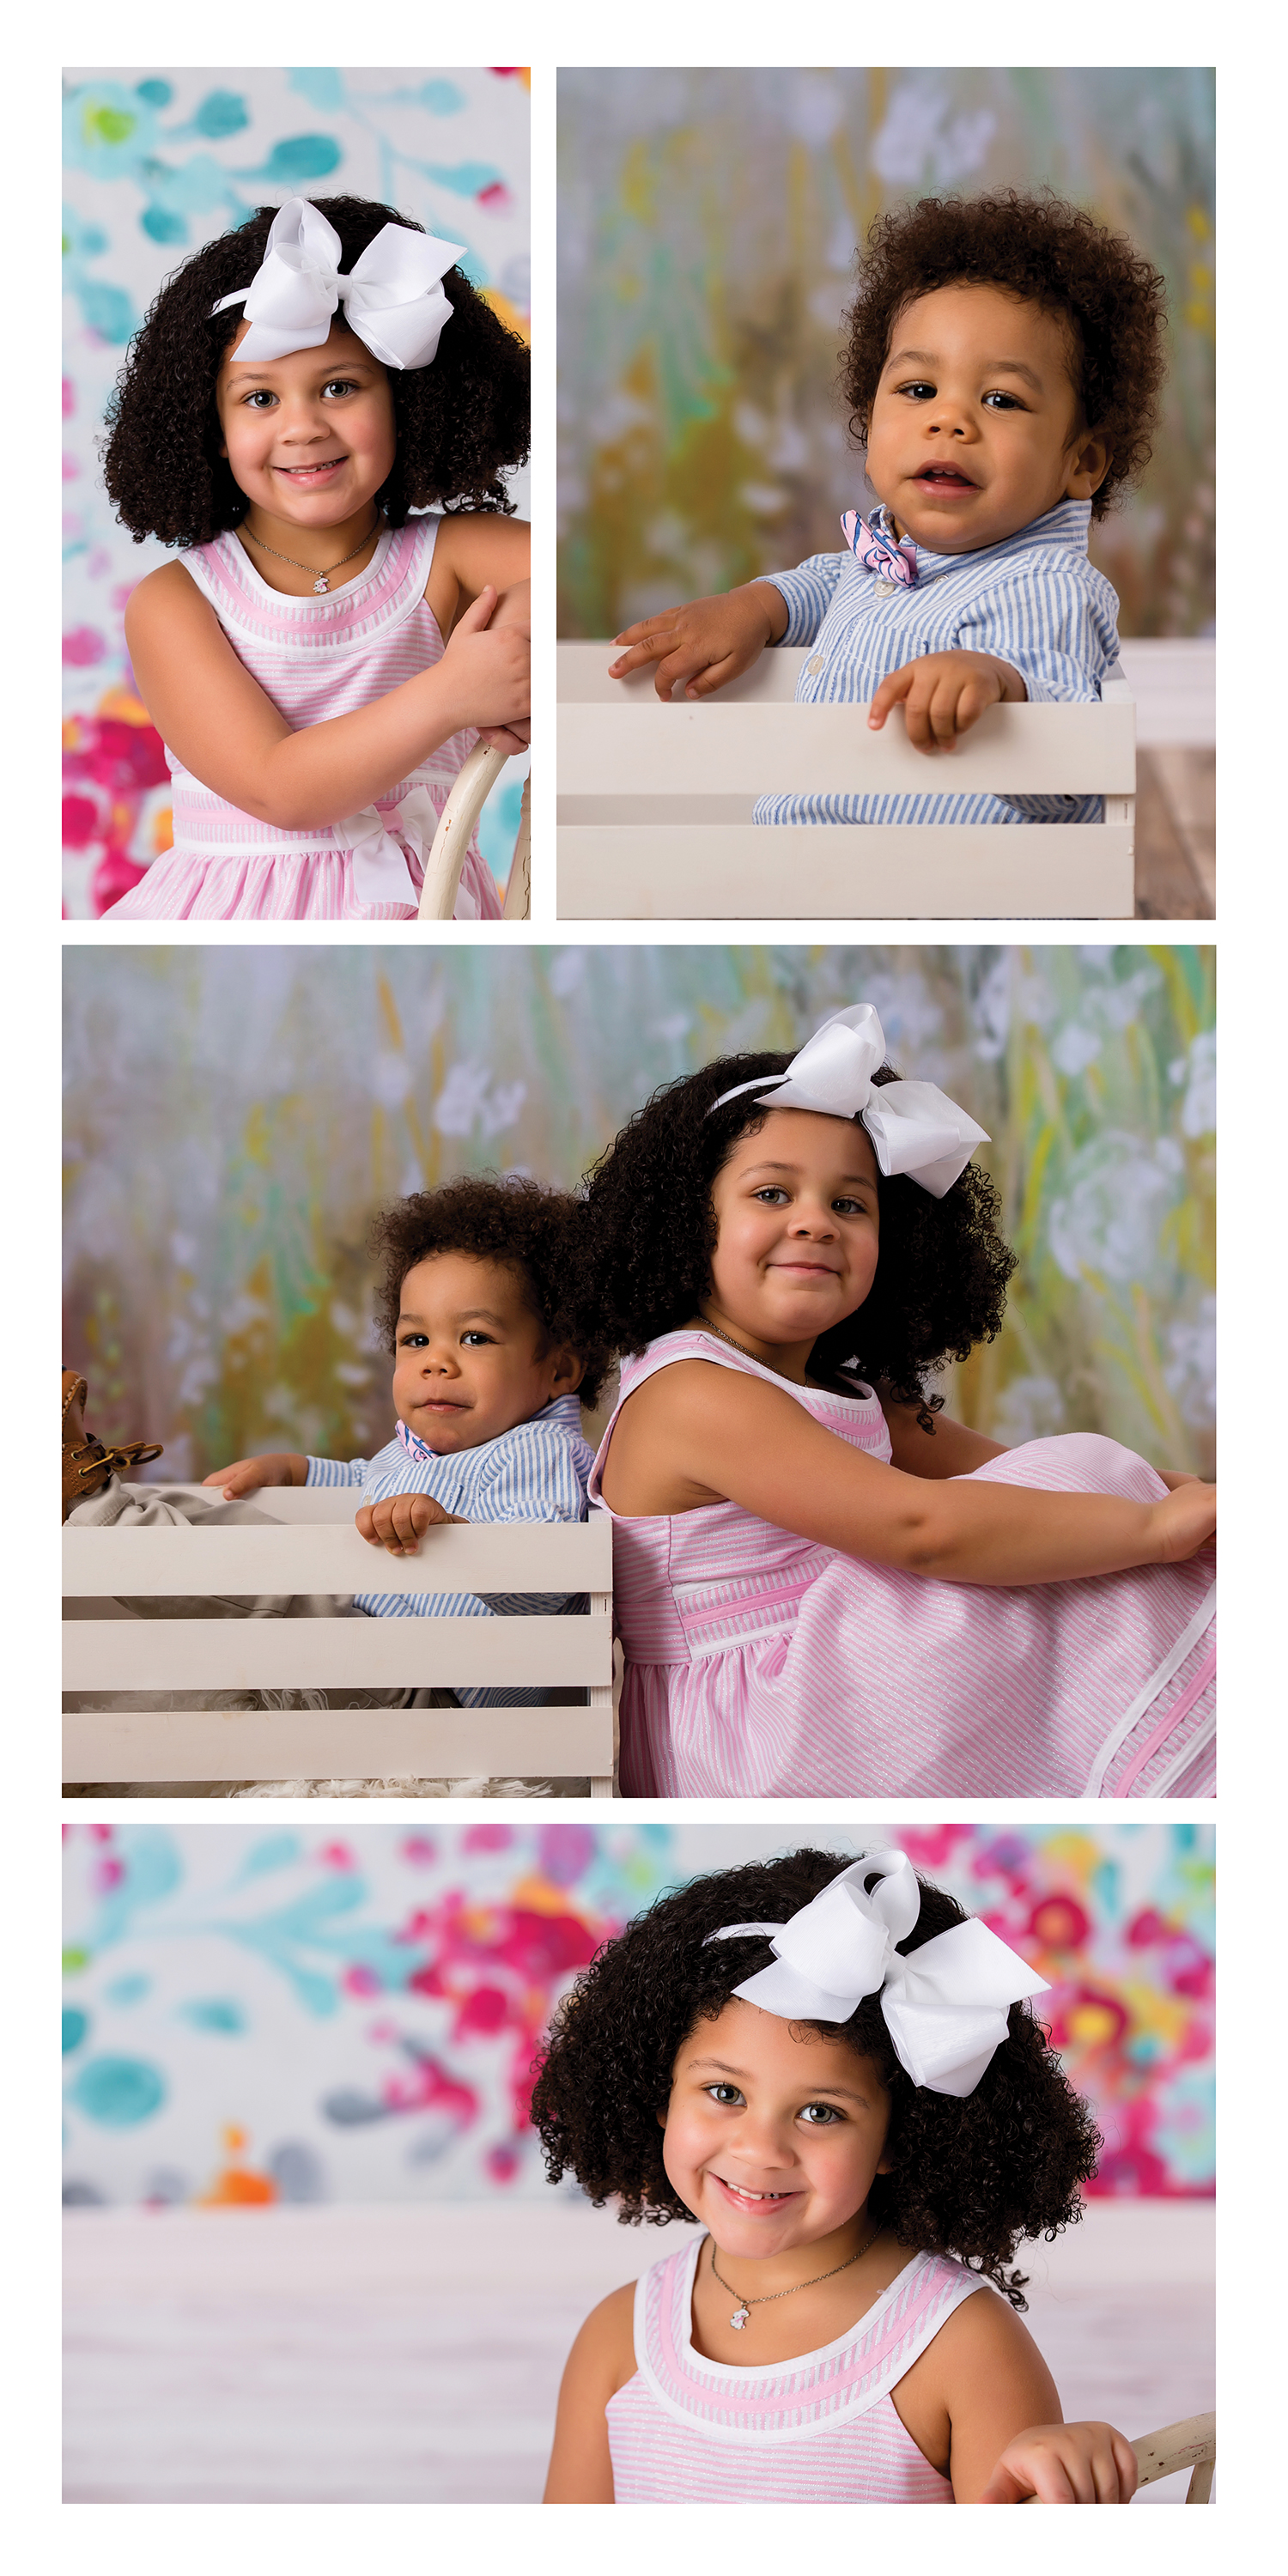 Cuyahoga Falls Child Photography